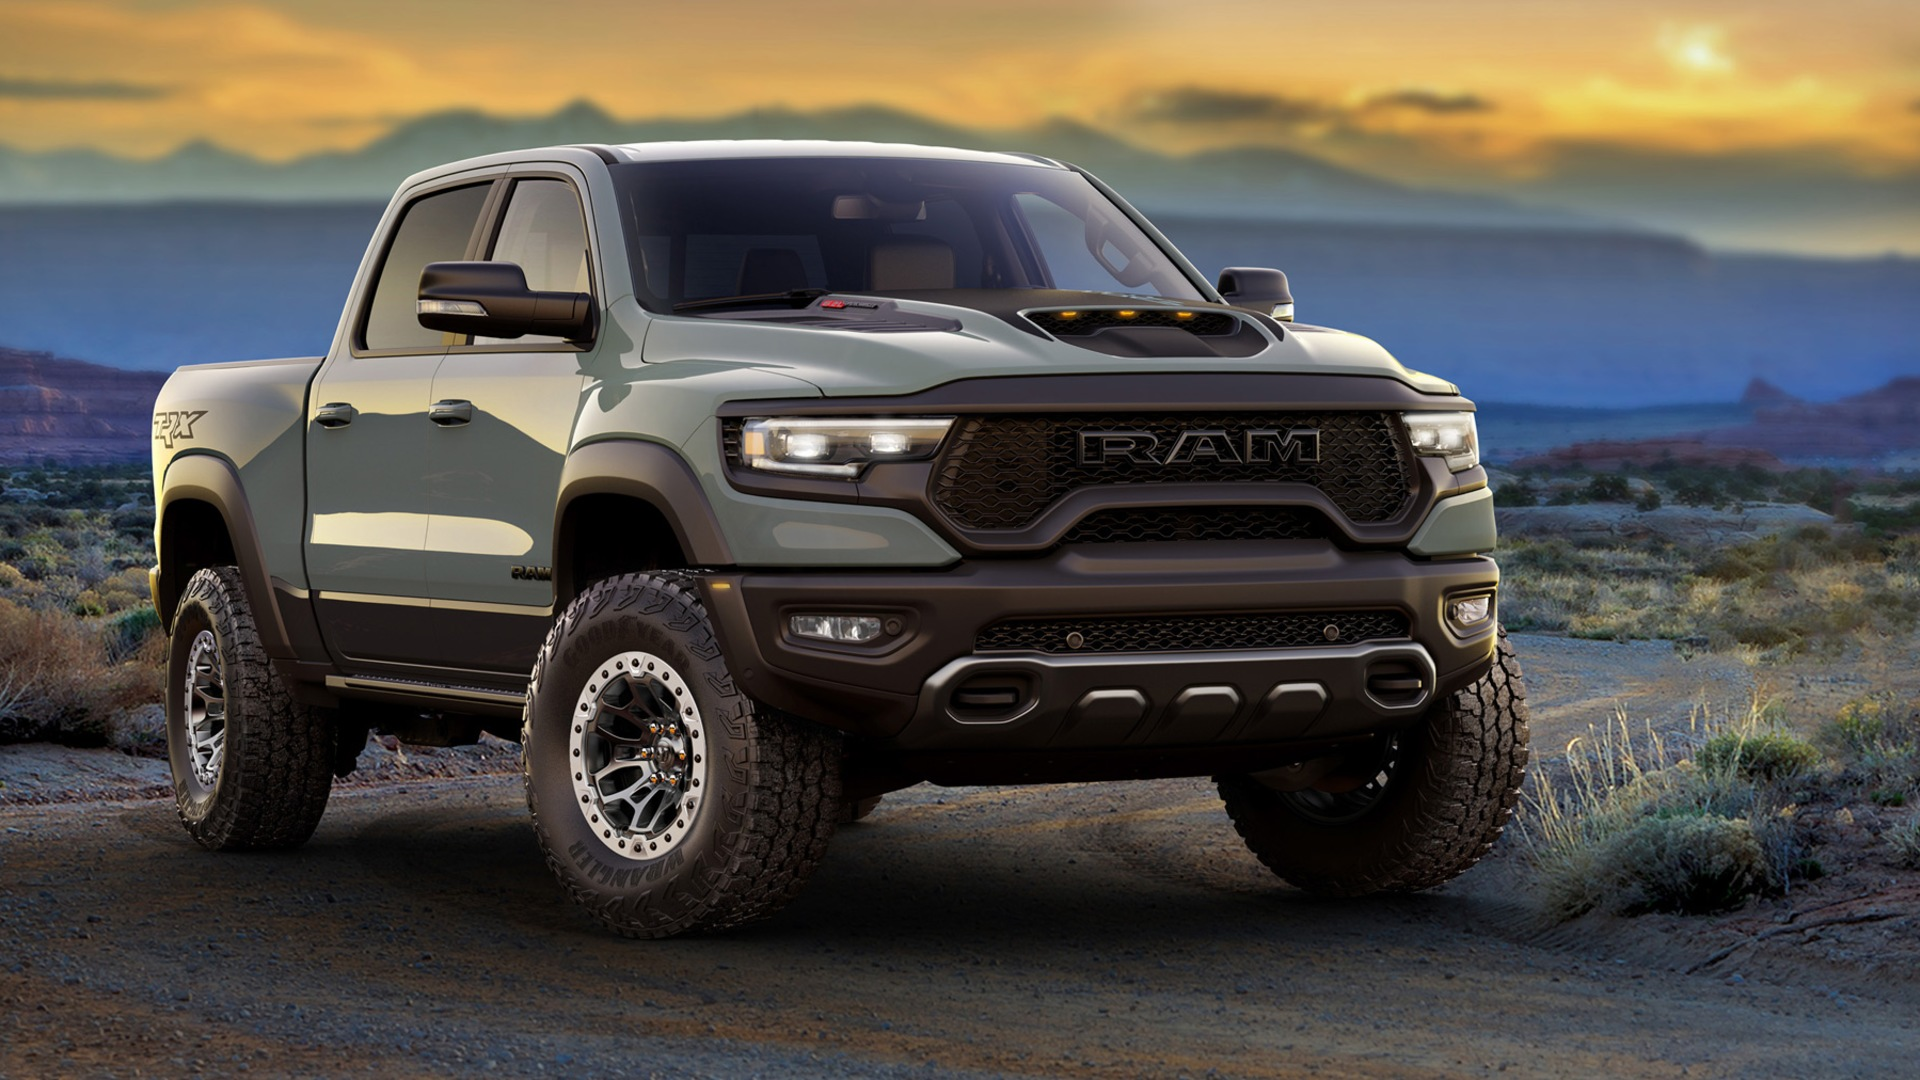 The 2021 Ram 1500 TRX is the most powerful half-ton pickup truck available.